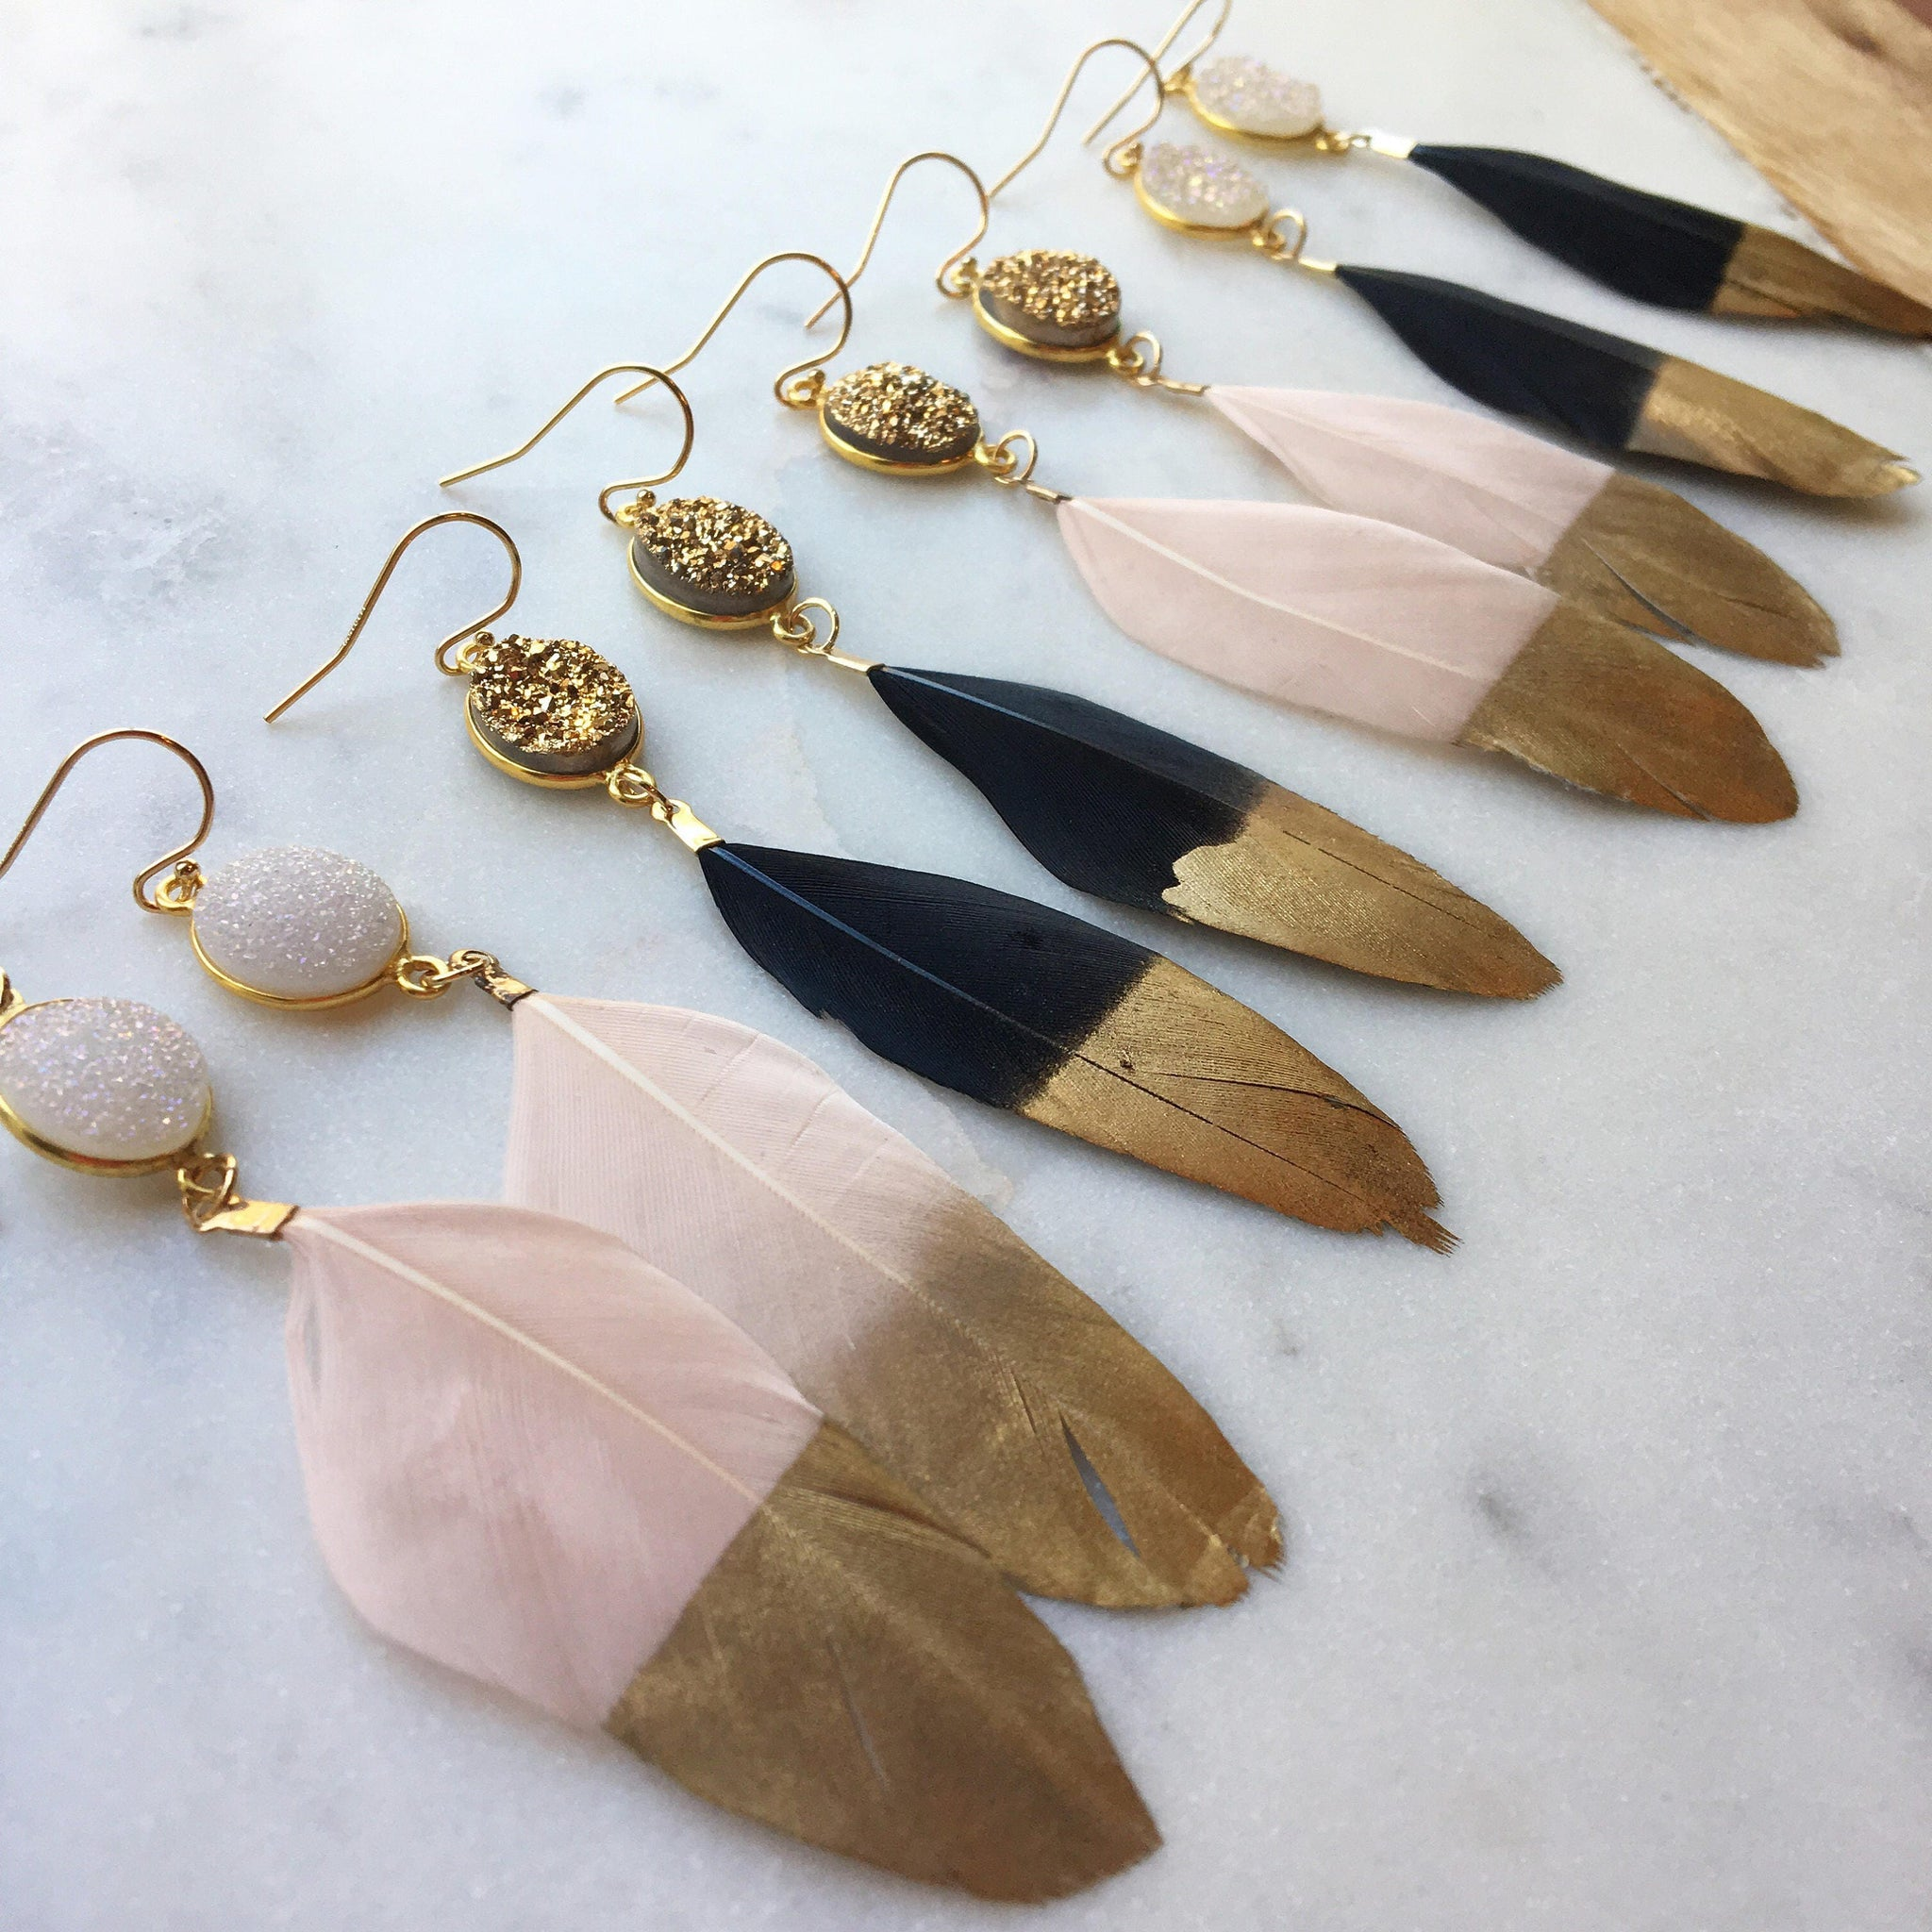 Gold Dipped Feather Earrings, Gold Druzy Earrings, White Druzy Earrings, Black Feather Earrings, Statement Earrings, Fairytale Gift